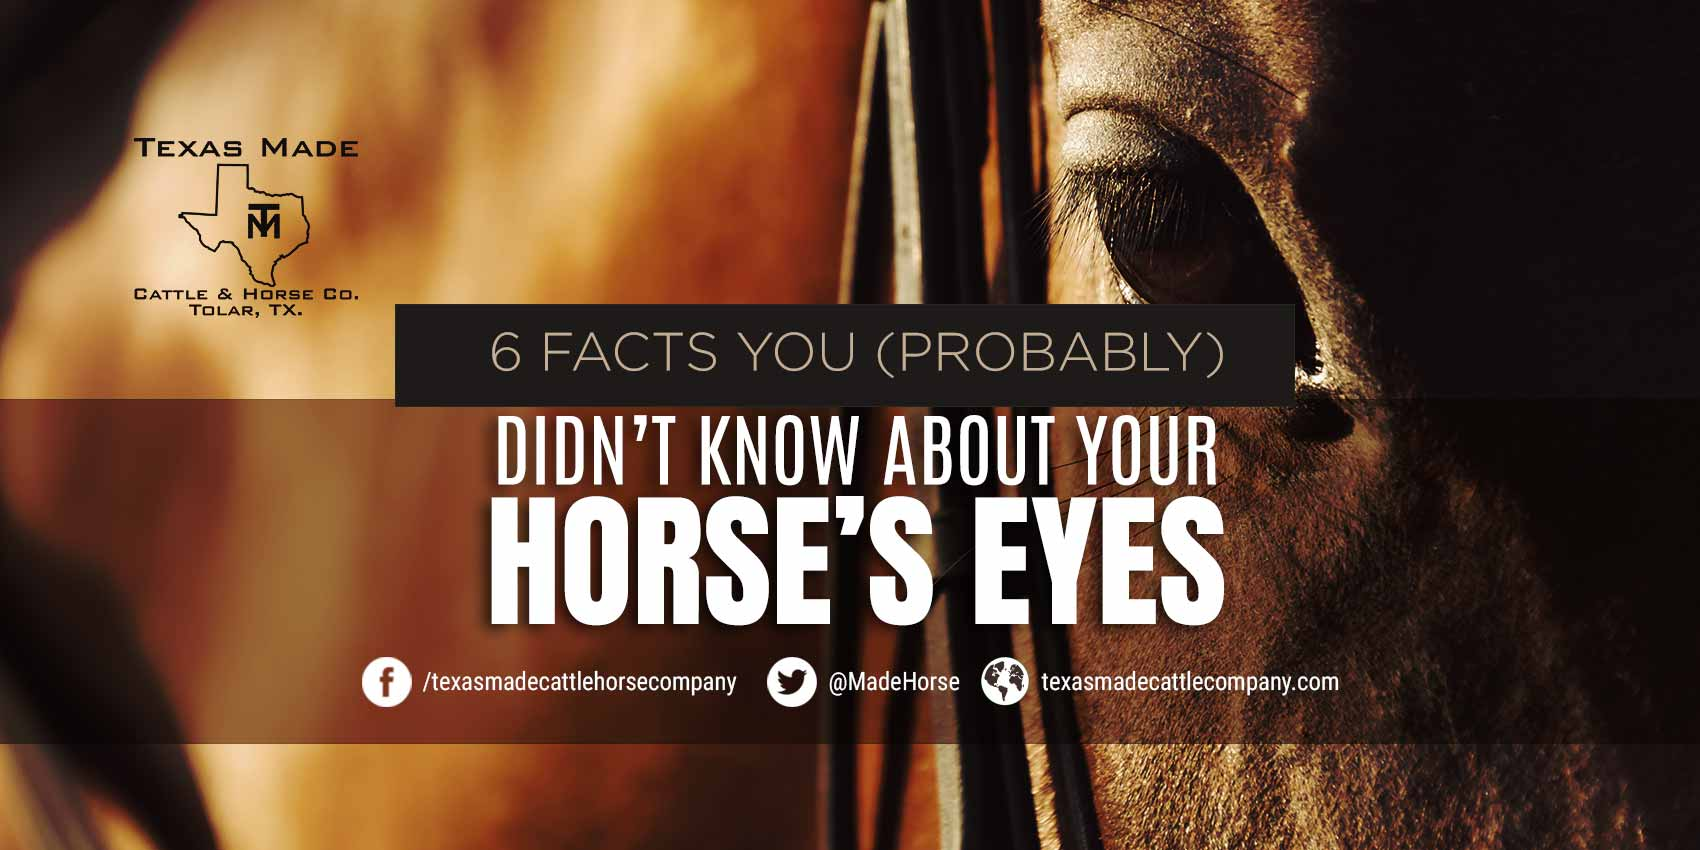 6 Facts You (Probably) Didn't Know About Your Horse's Eyes